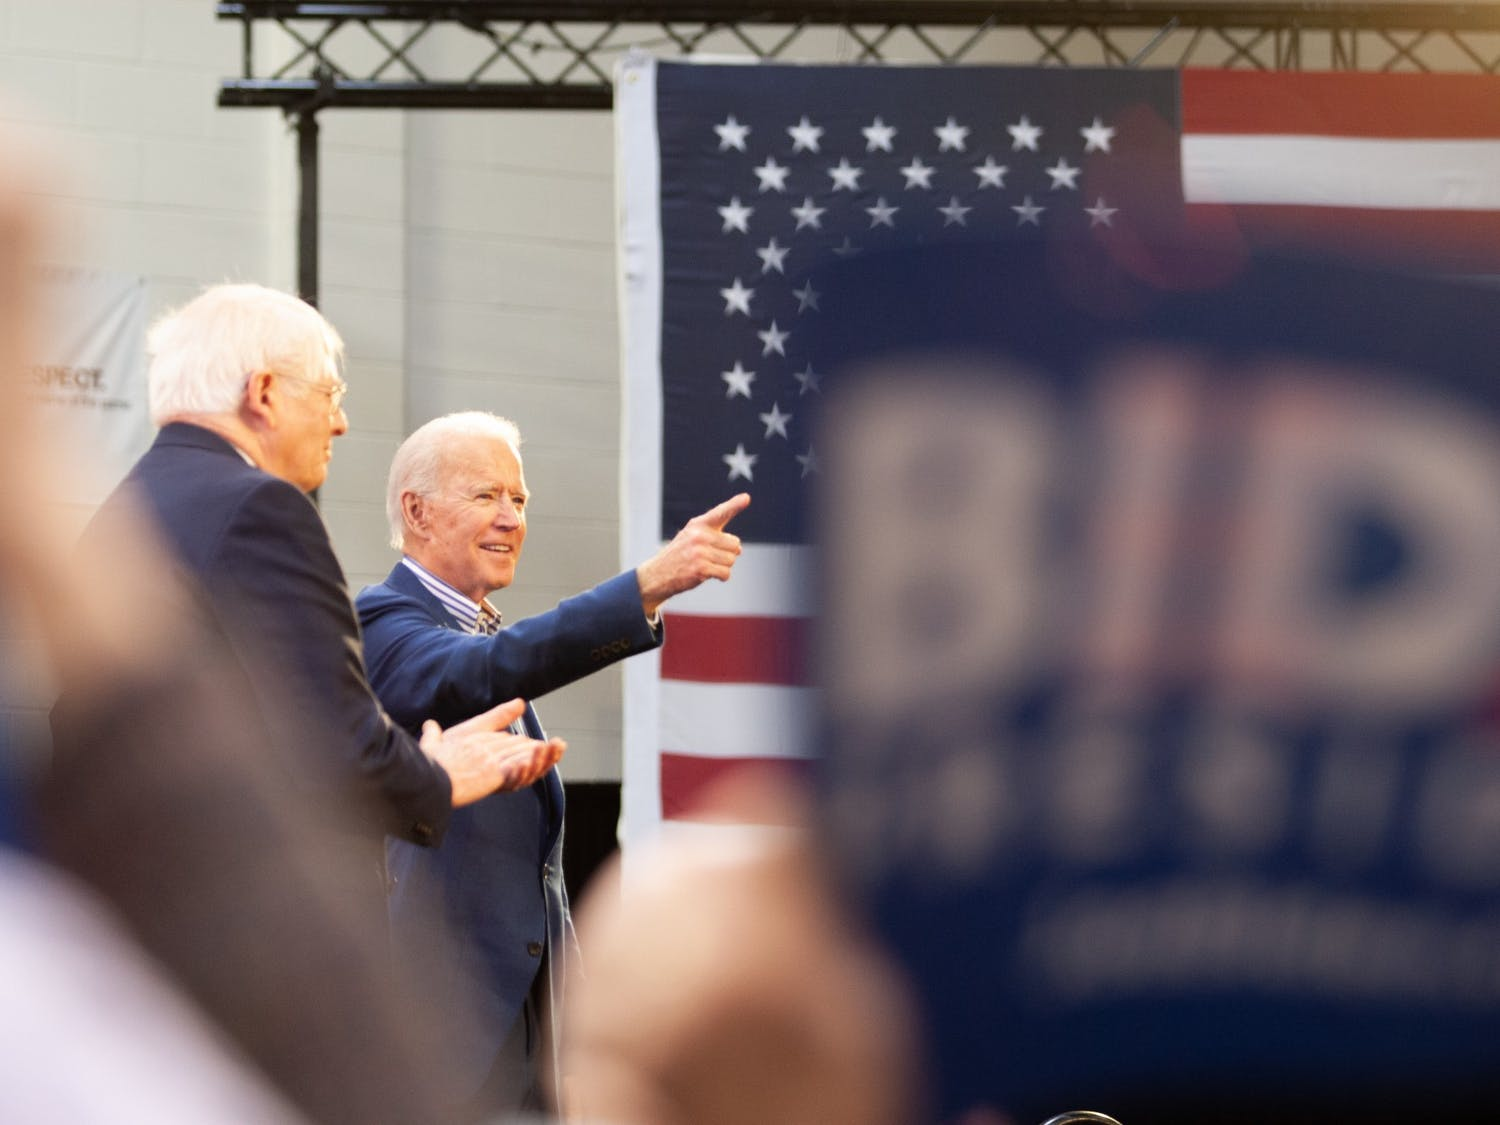 Former Vice President Joe Biden speaks during a rally ahead of Super Tuesday at St. Augustine's University in Raleigh, on Saturday, Feb. 29, 2020. Later that day, Biden won the South Carolina primary.